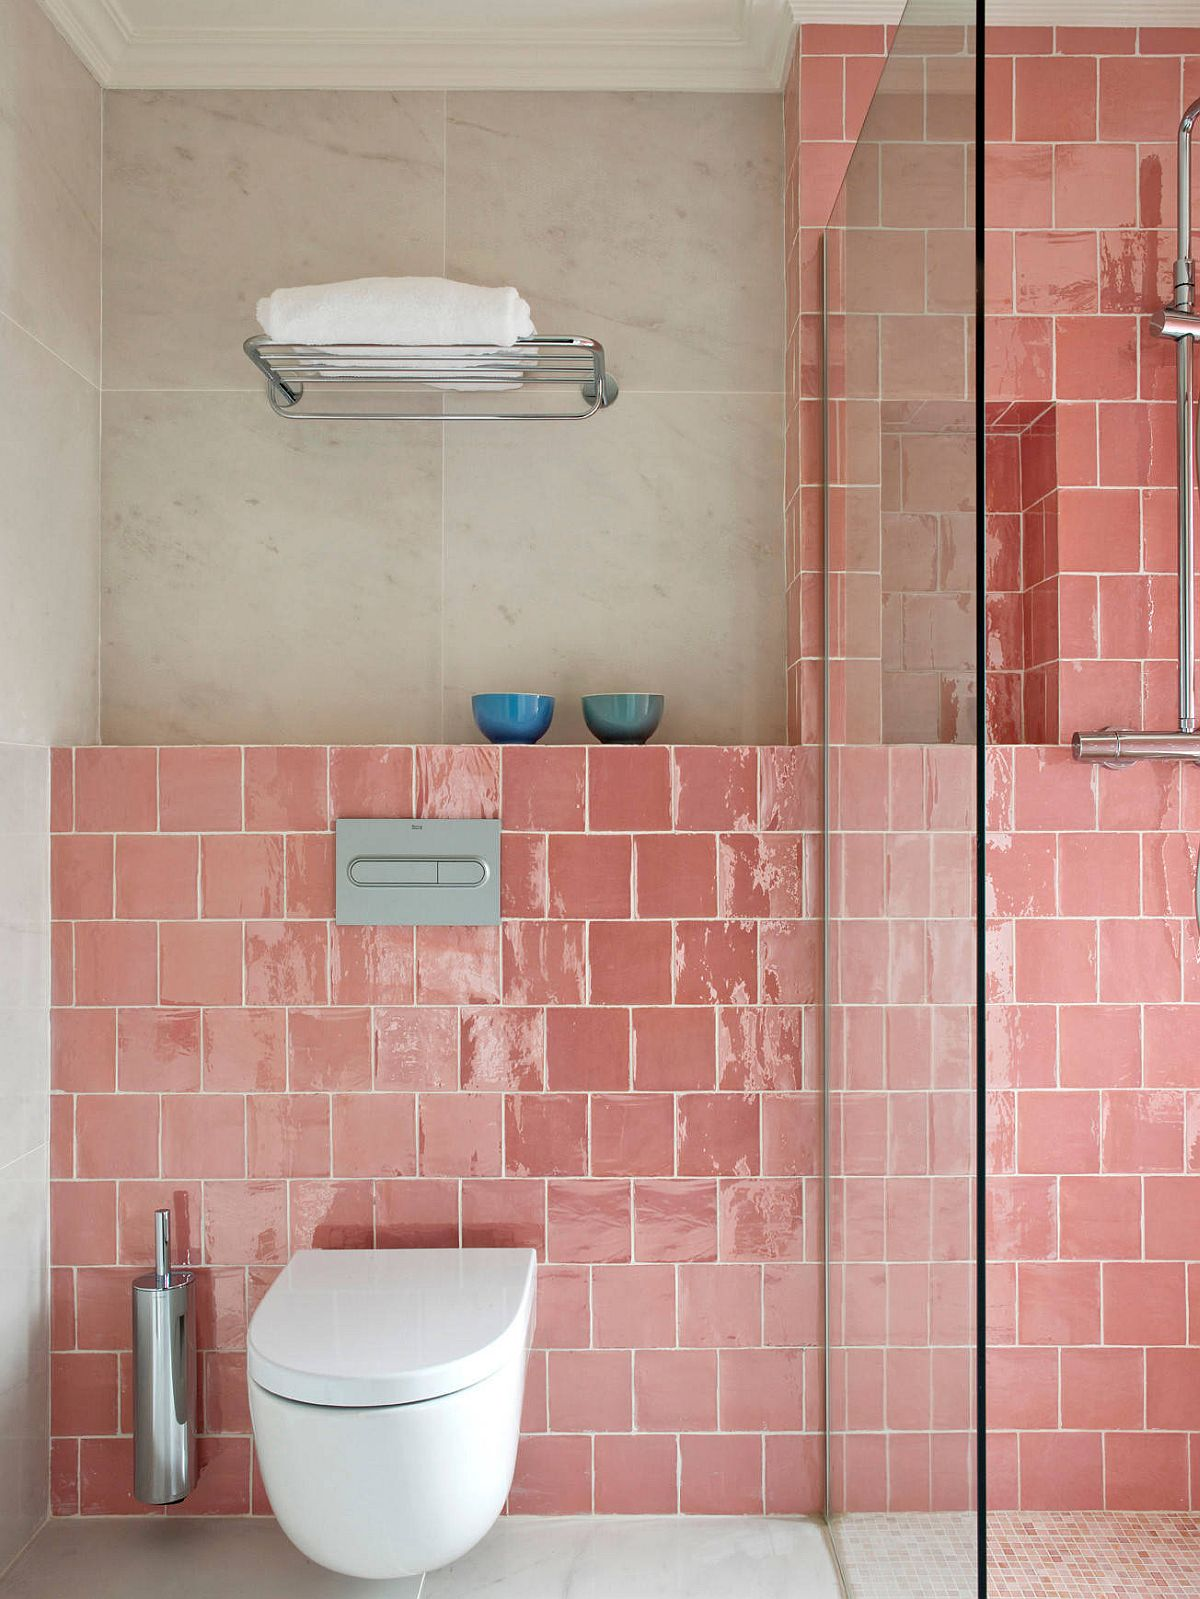 Eclectic bathroom with pink tile for the shower area